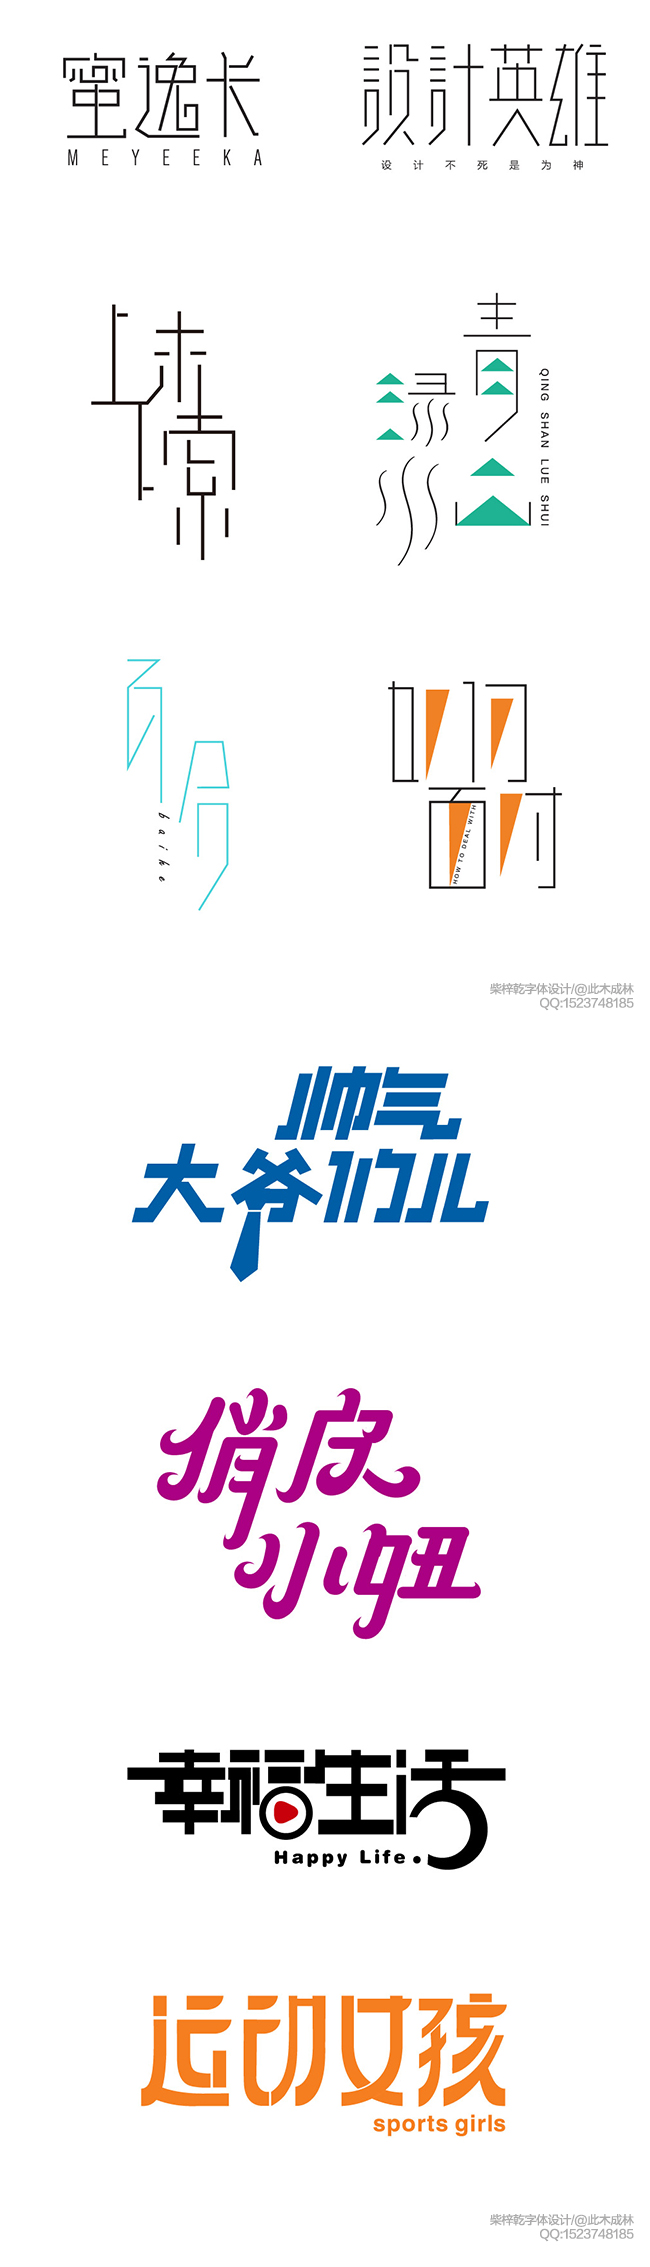 chinesefontdesign.com 2016 07 18 19 51 22 88 Chinese Font Logo Designs: Brew Your Best Identity